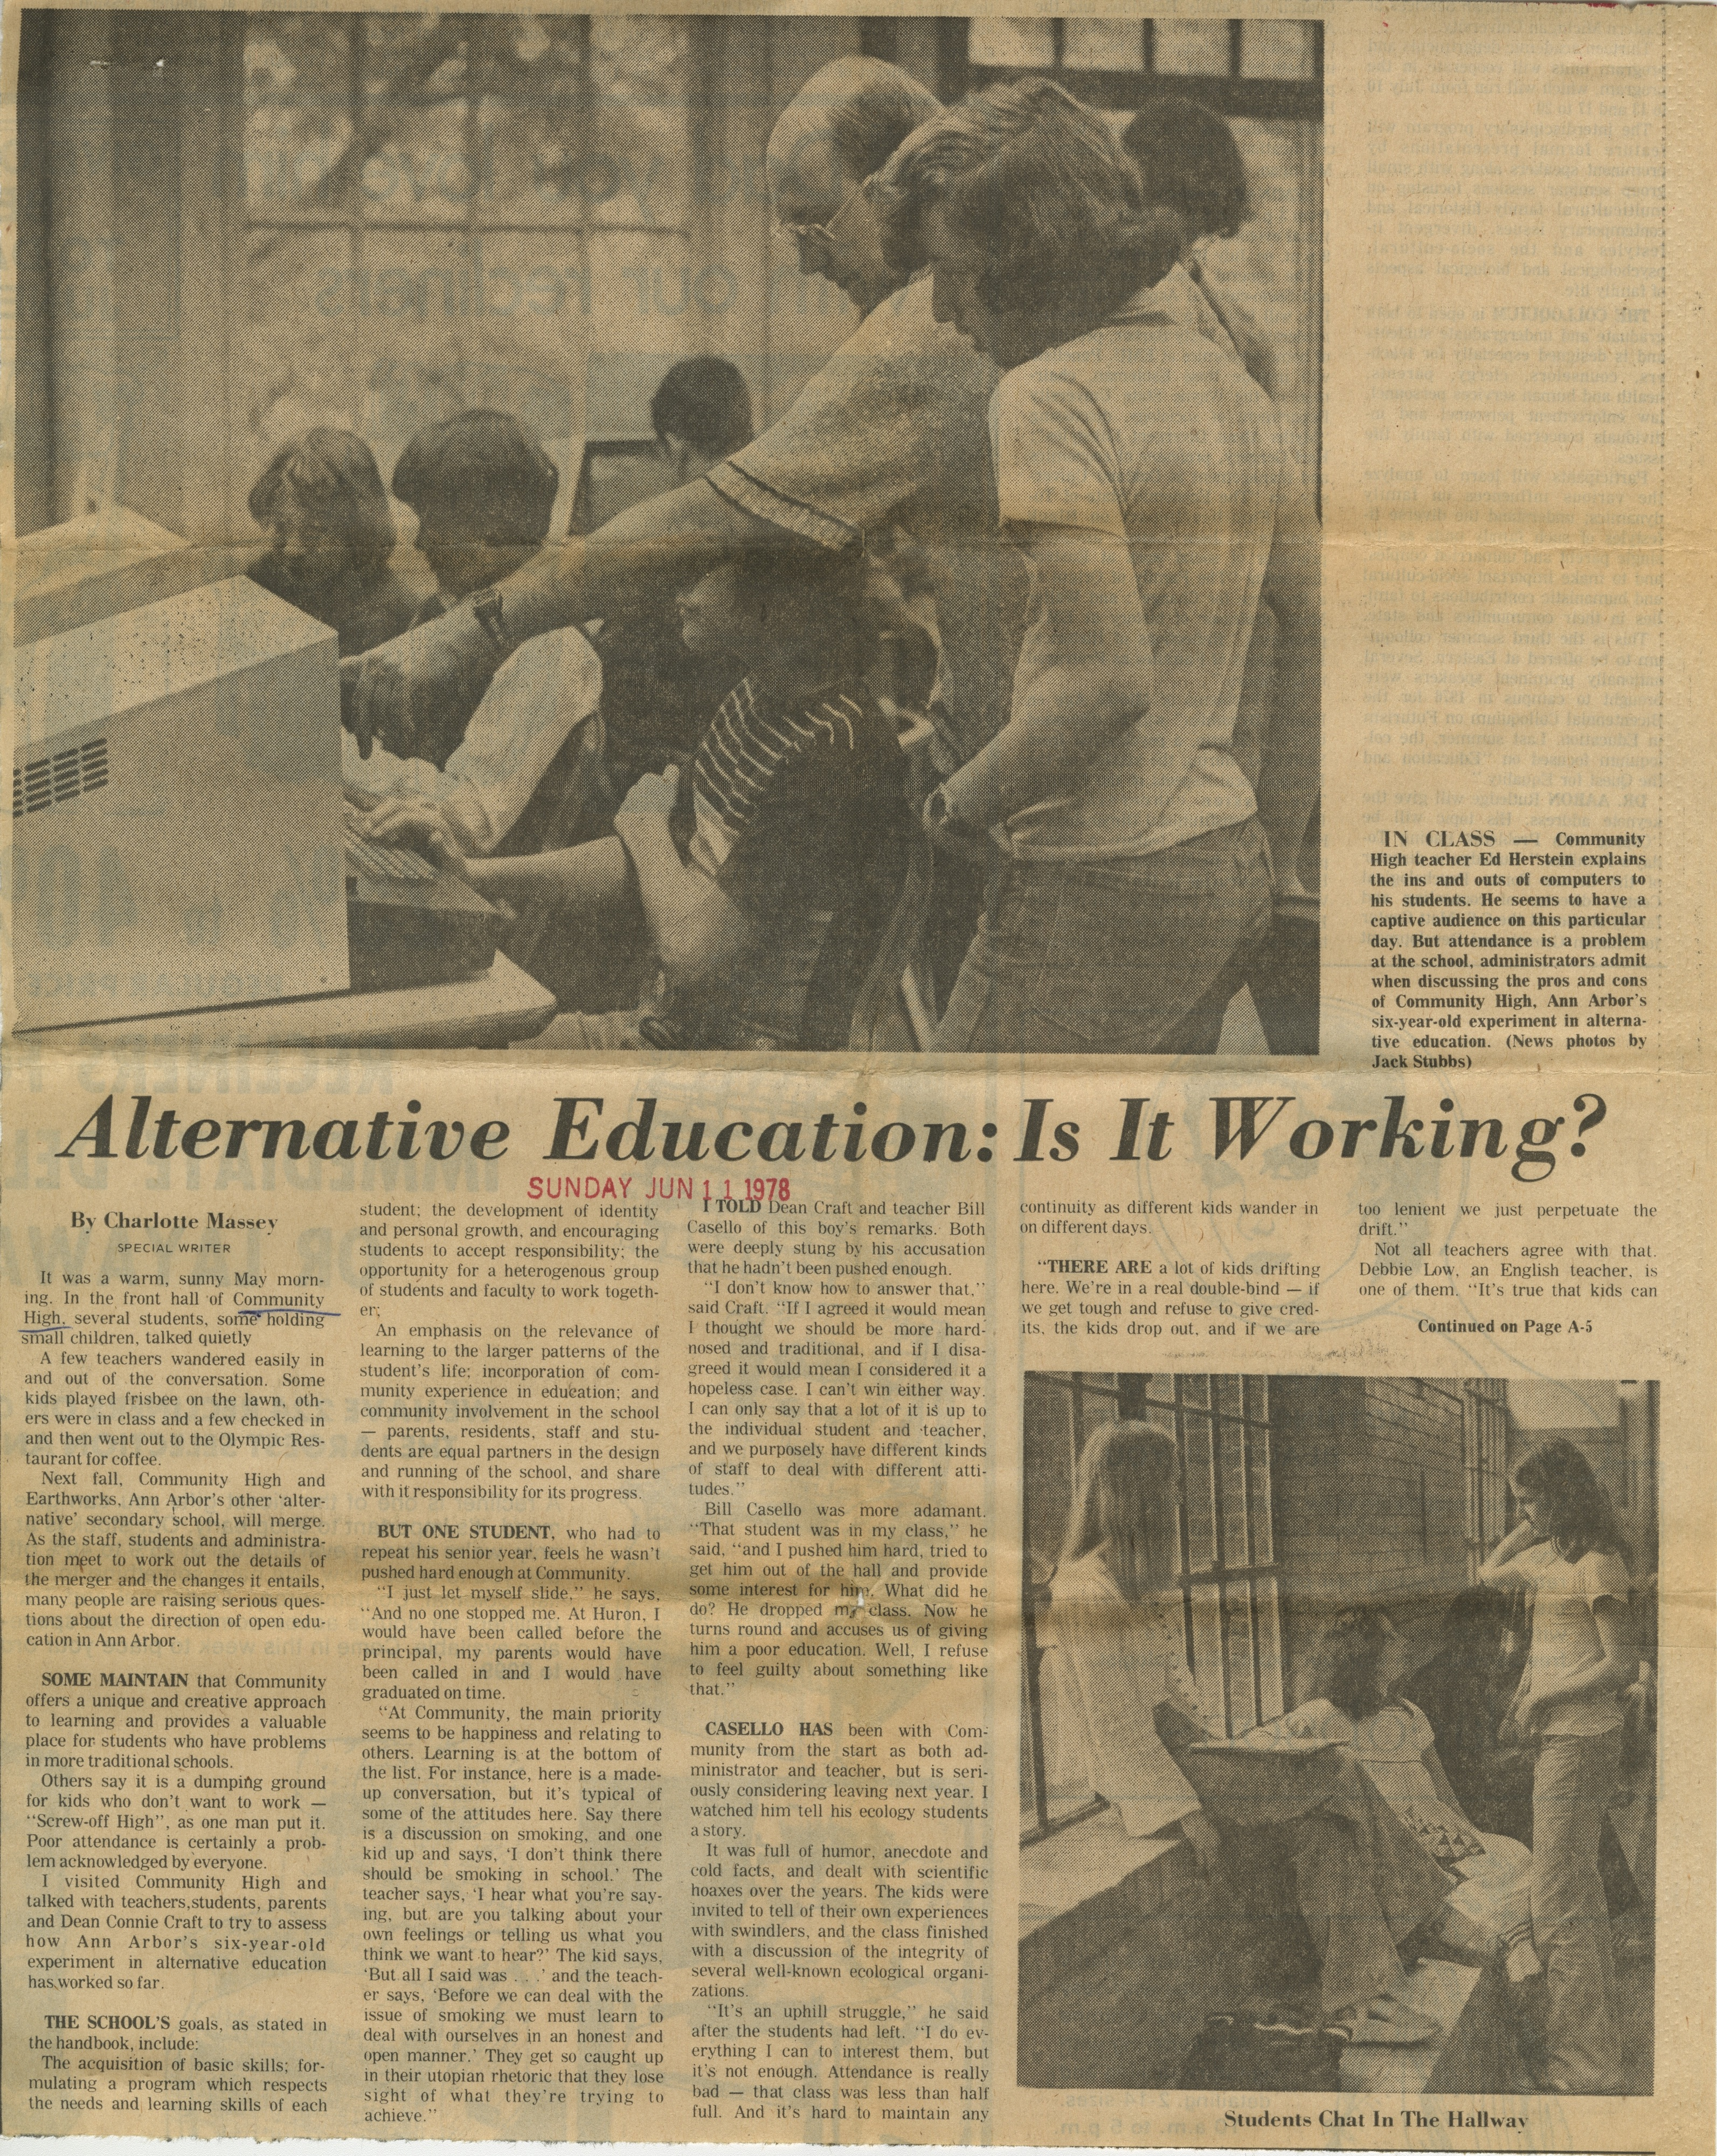 Alternative Education: Is It Working? image